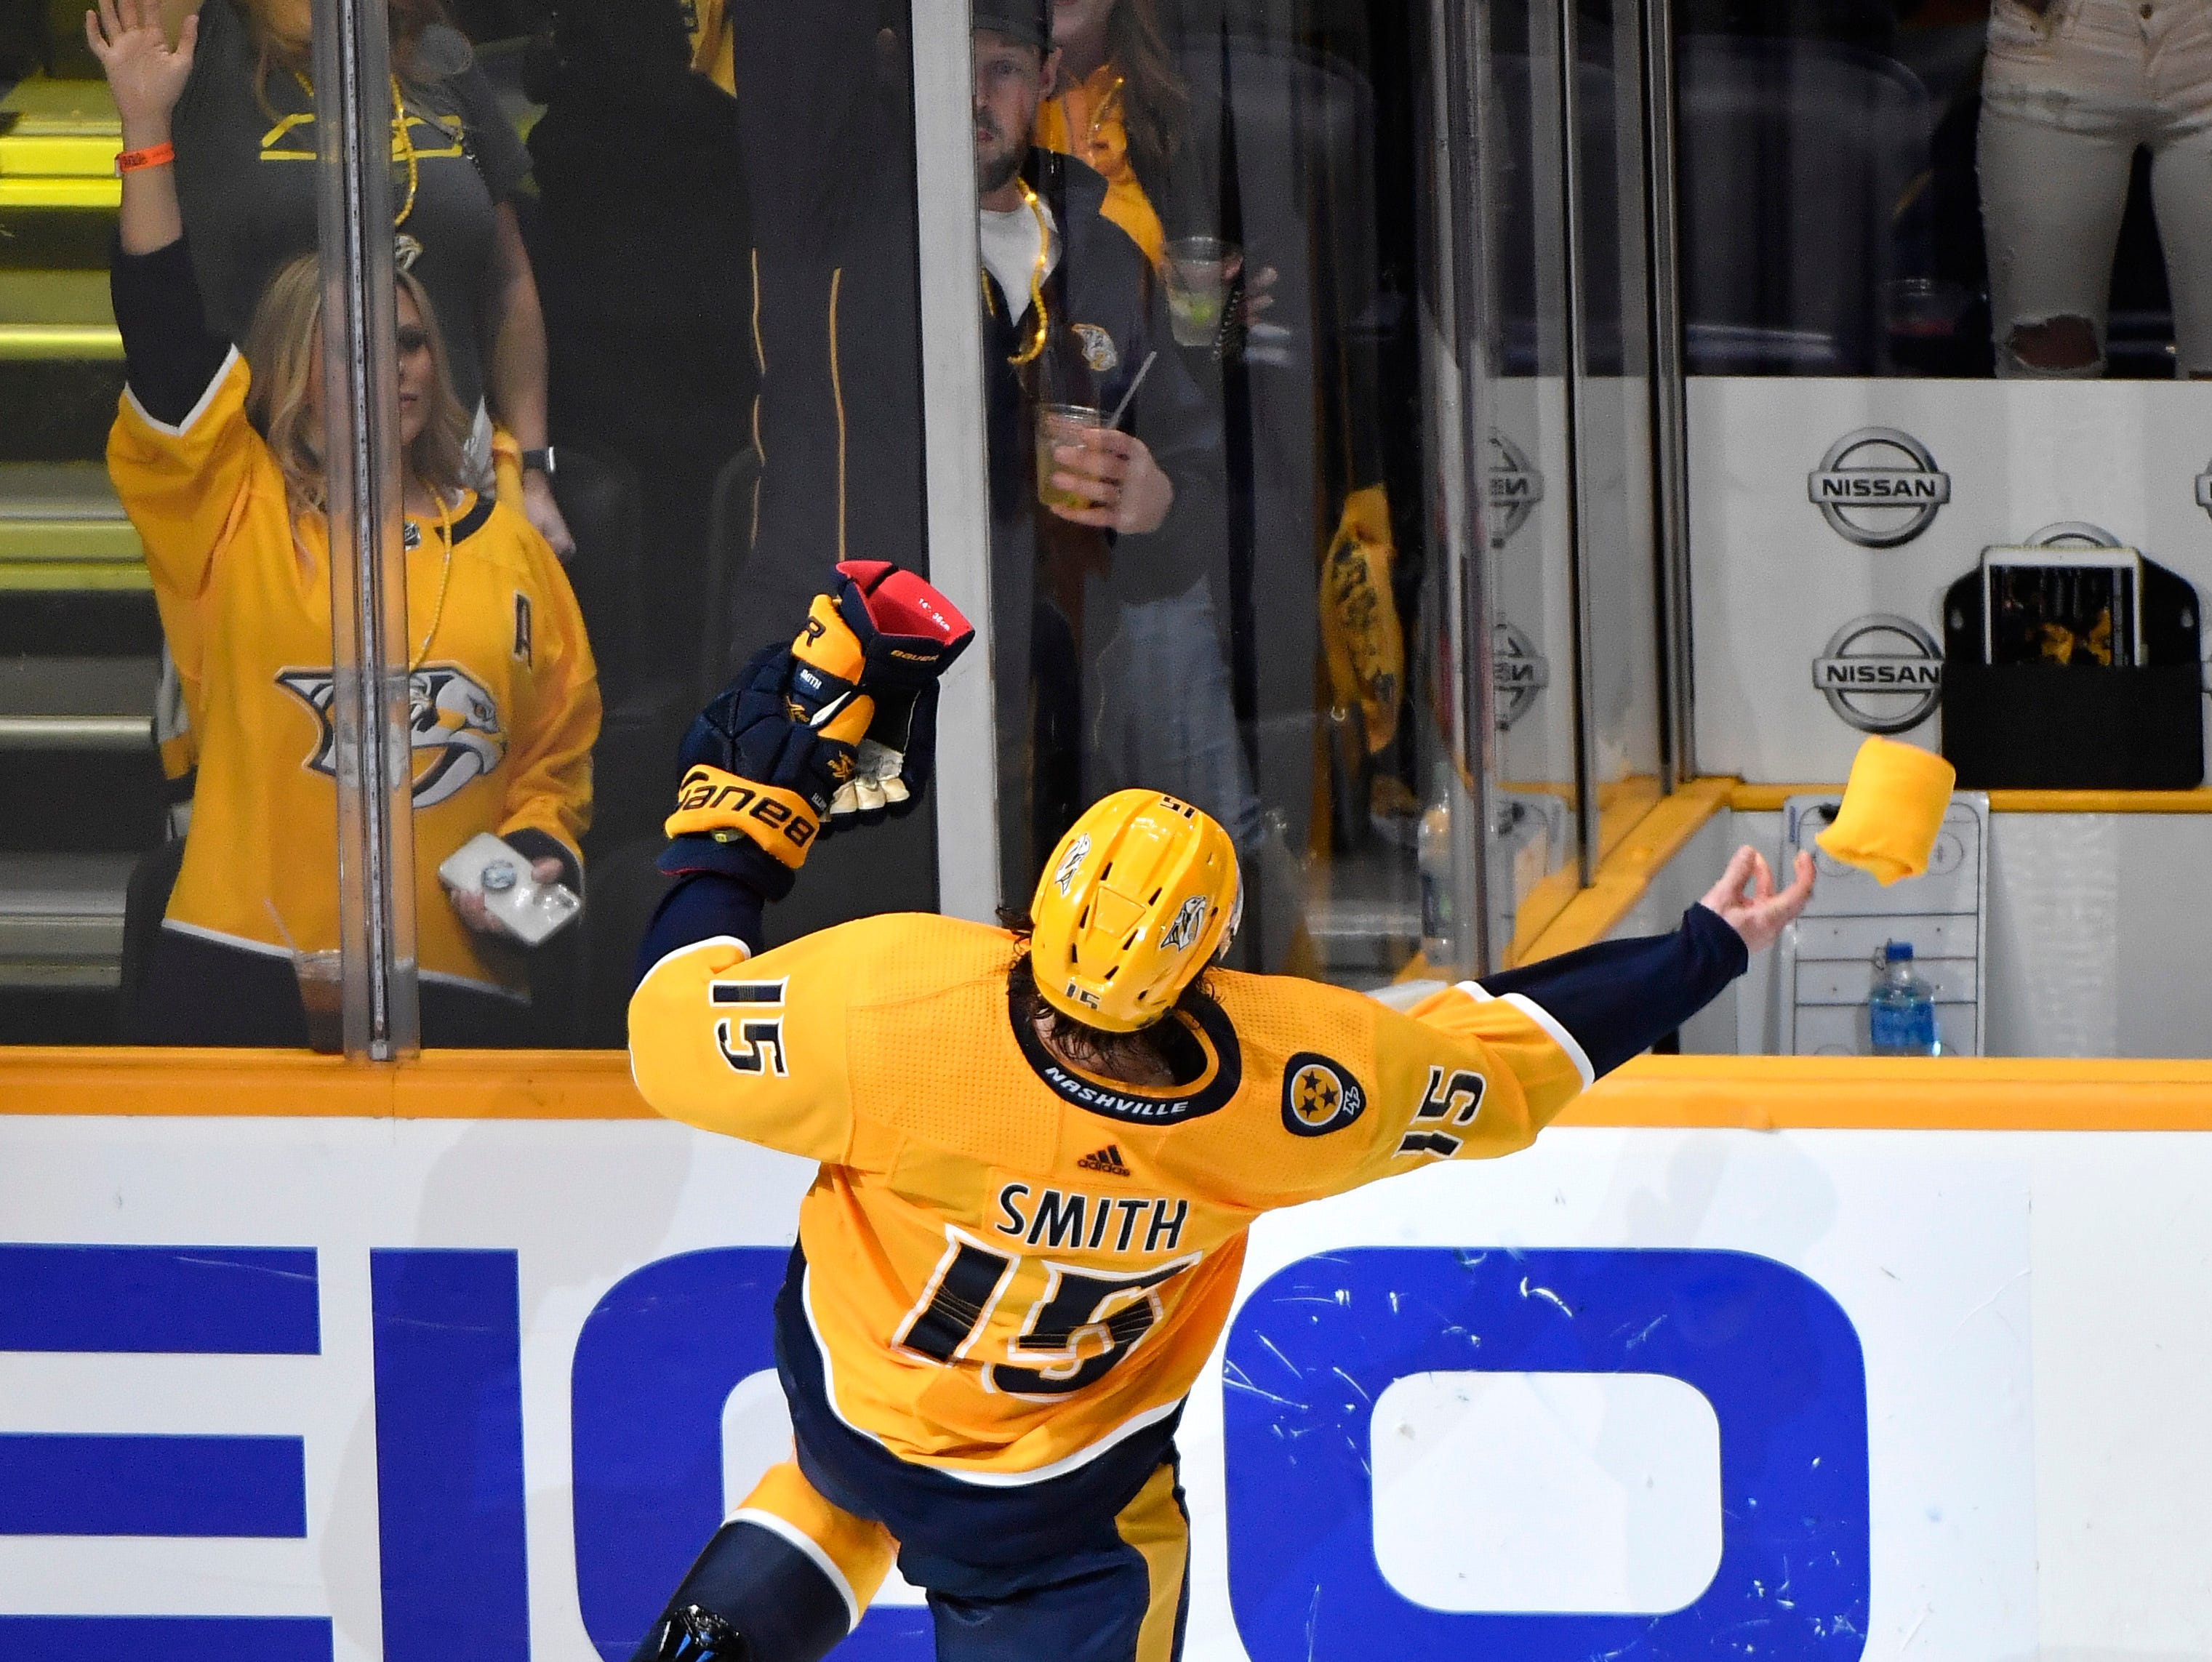 Nashville Predators right wing Craig Smith (15) ris recognized after his game-winning goal in overtime giving the Predators a 2-1 win over the Dallas Stars in the divisional semifinal game at Bridgestone Arena in Nashville, Tenn., Saturday, April 13, 2019.